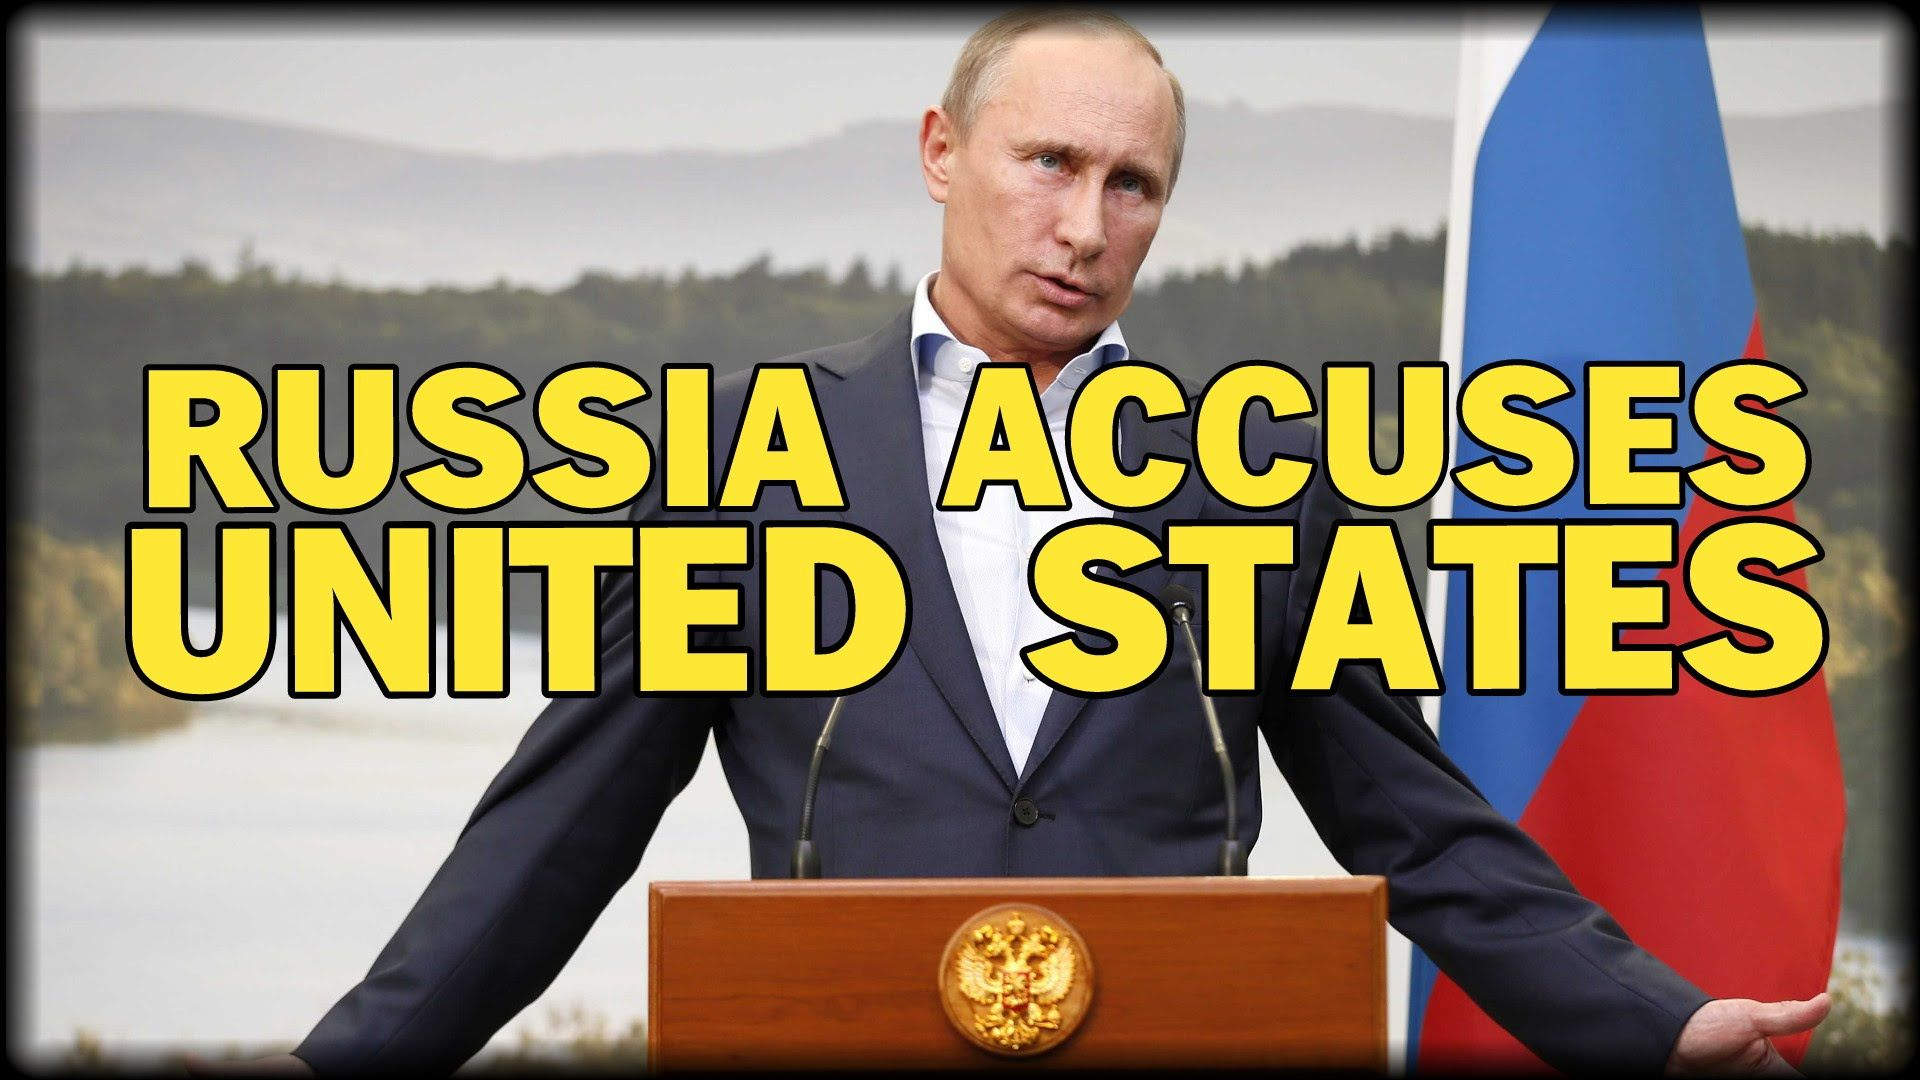 RUSSIA ACCUSES UNITED STATES THEY REVEALED OUR JET'S